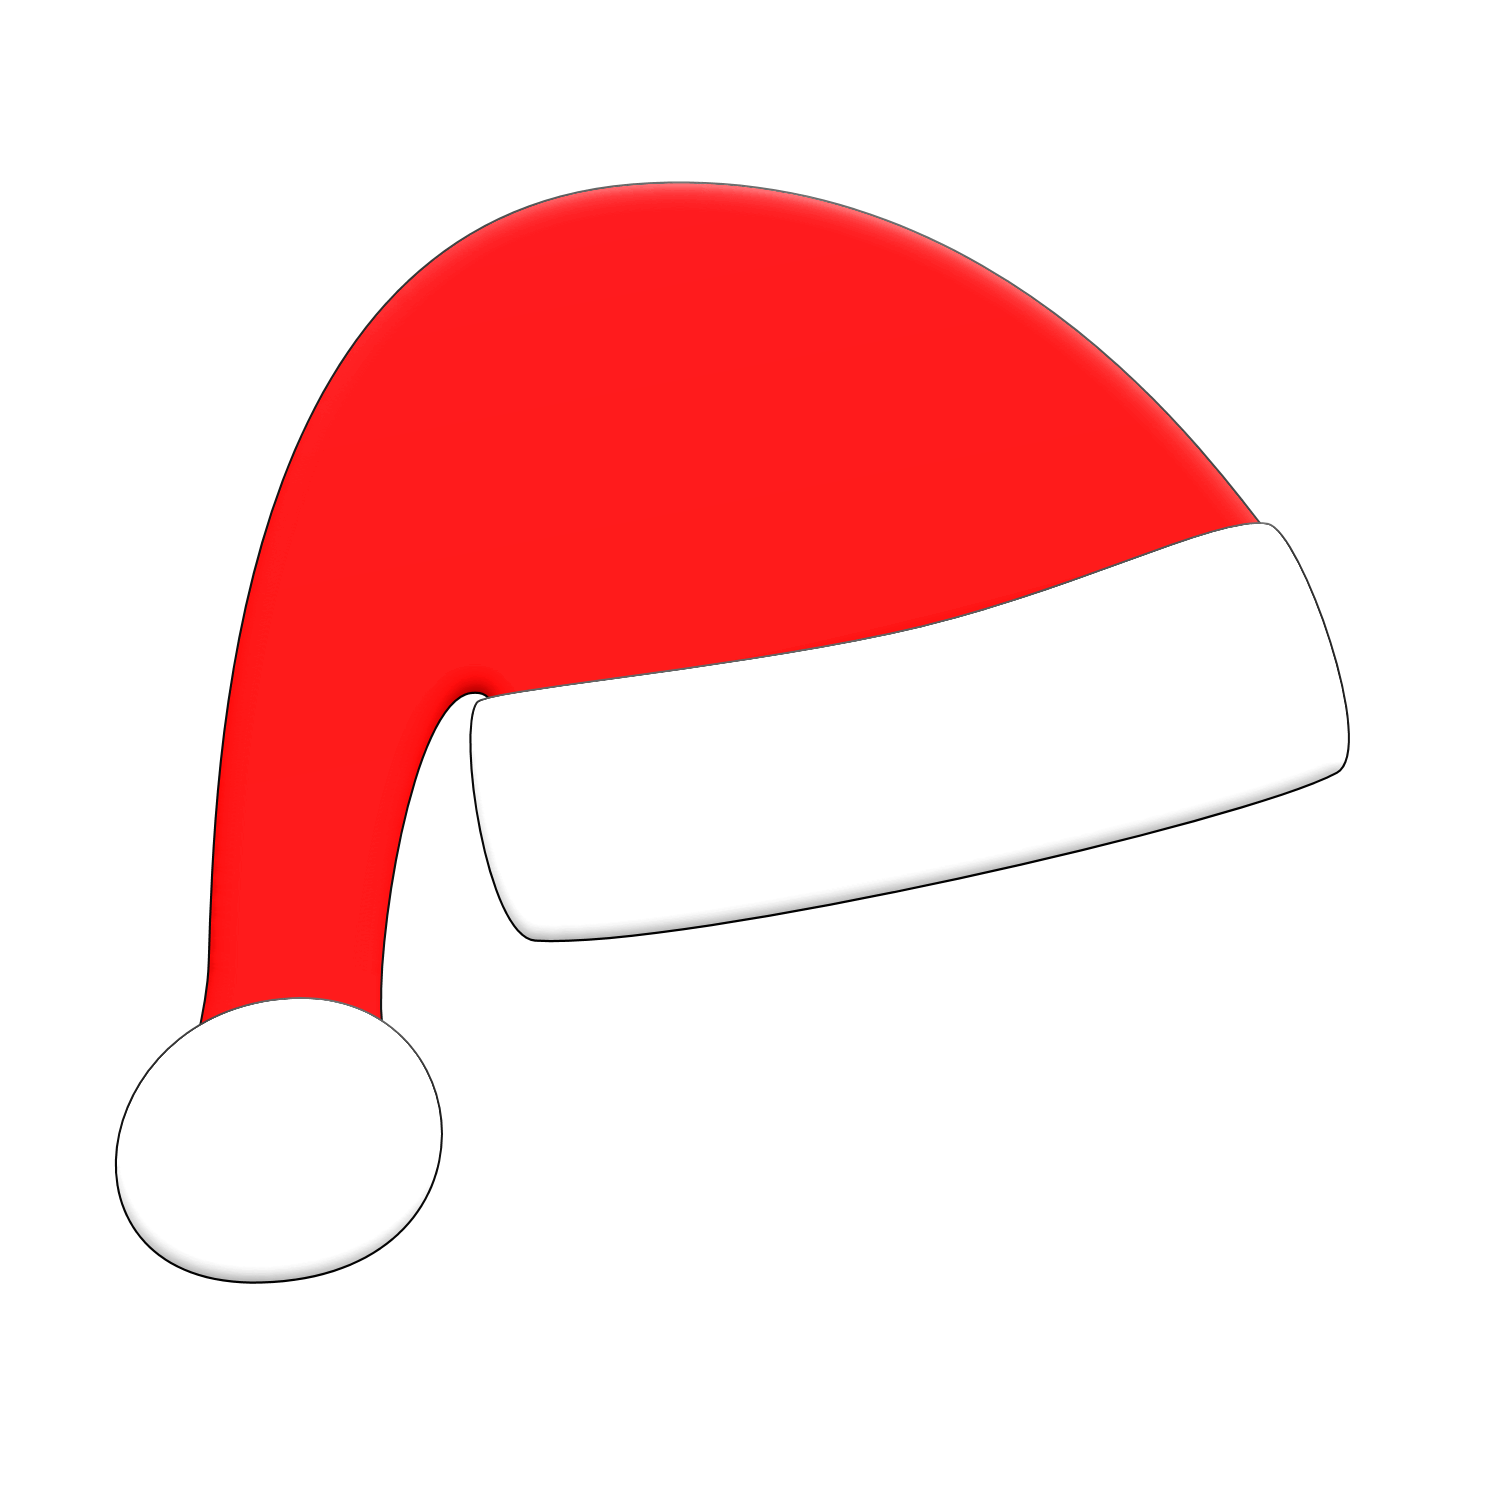 Santa Hat clipart #13, Download drawings